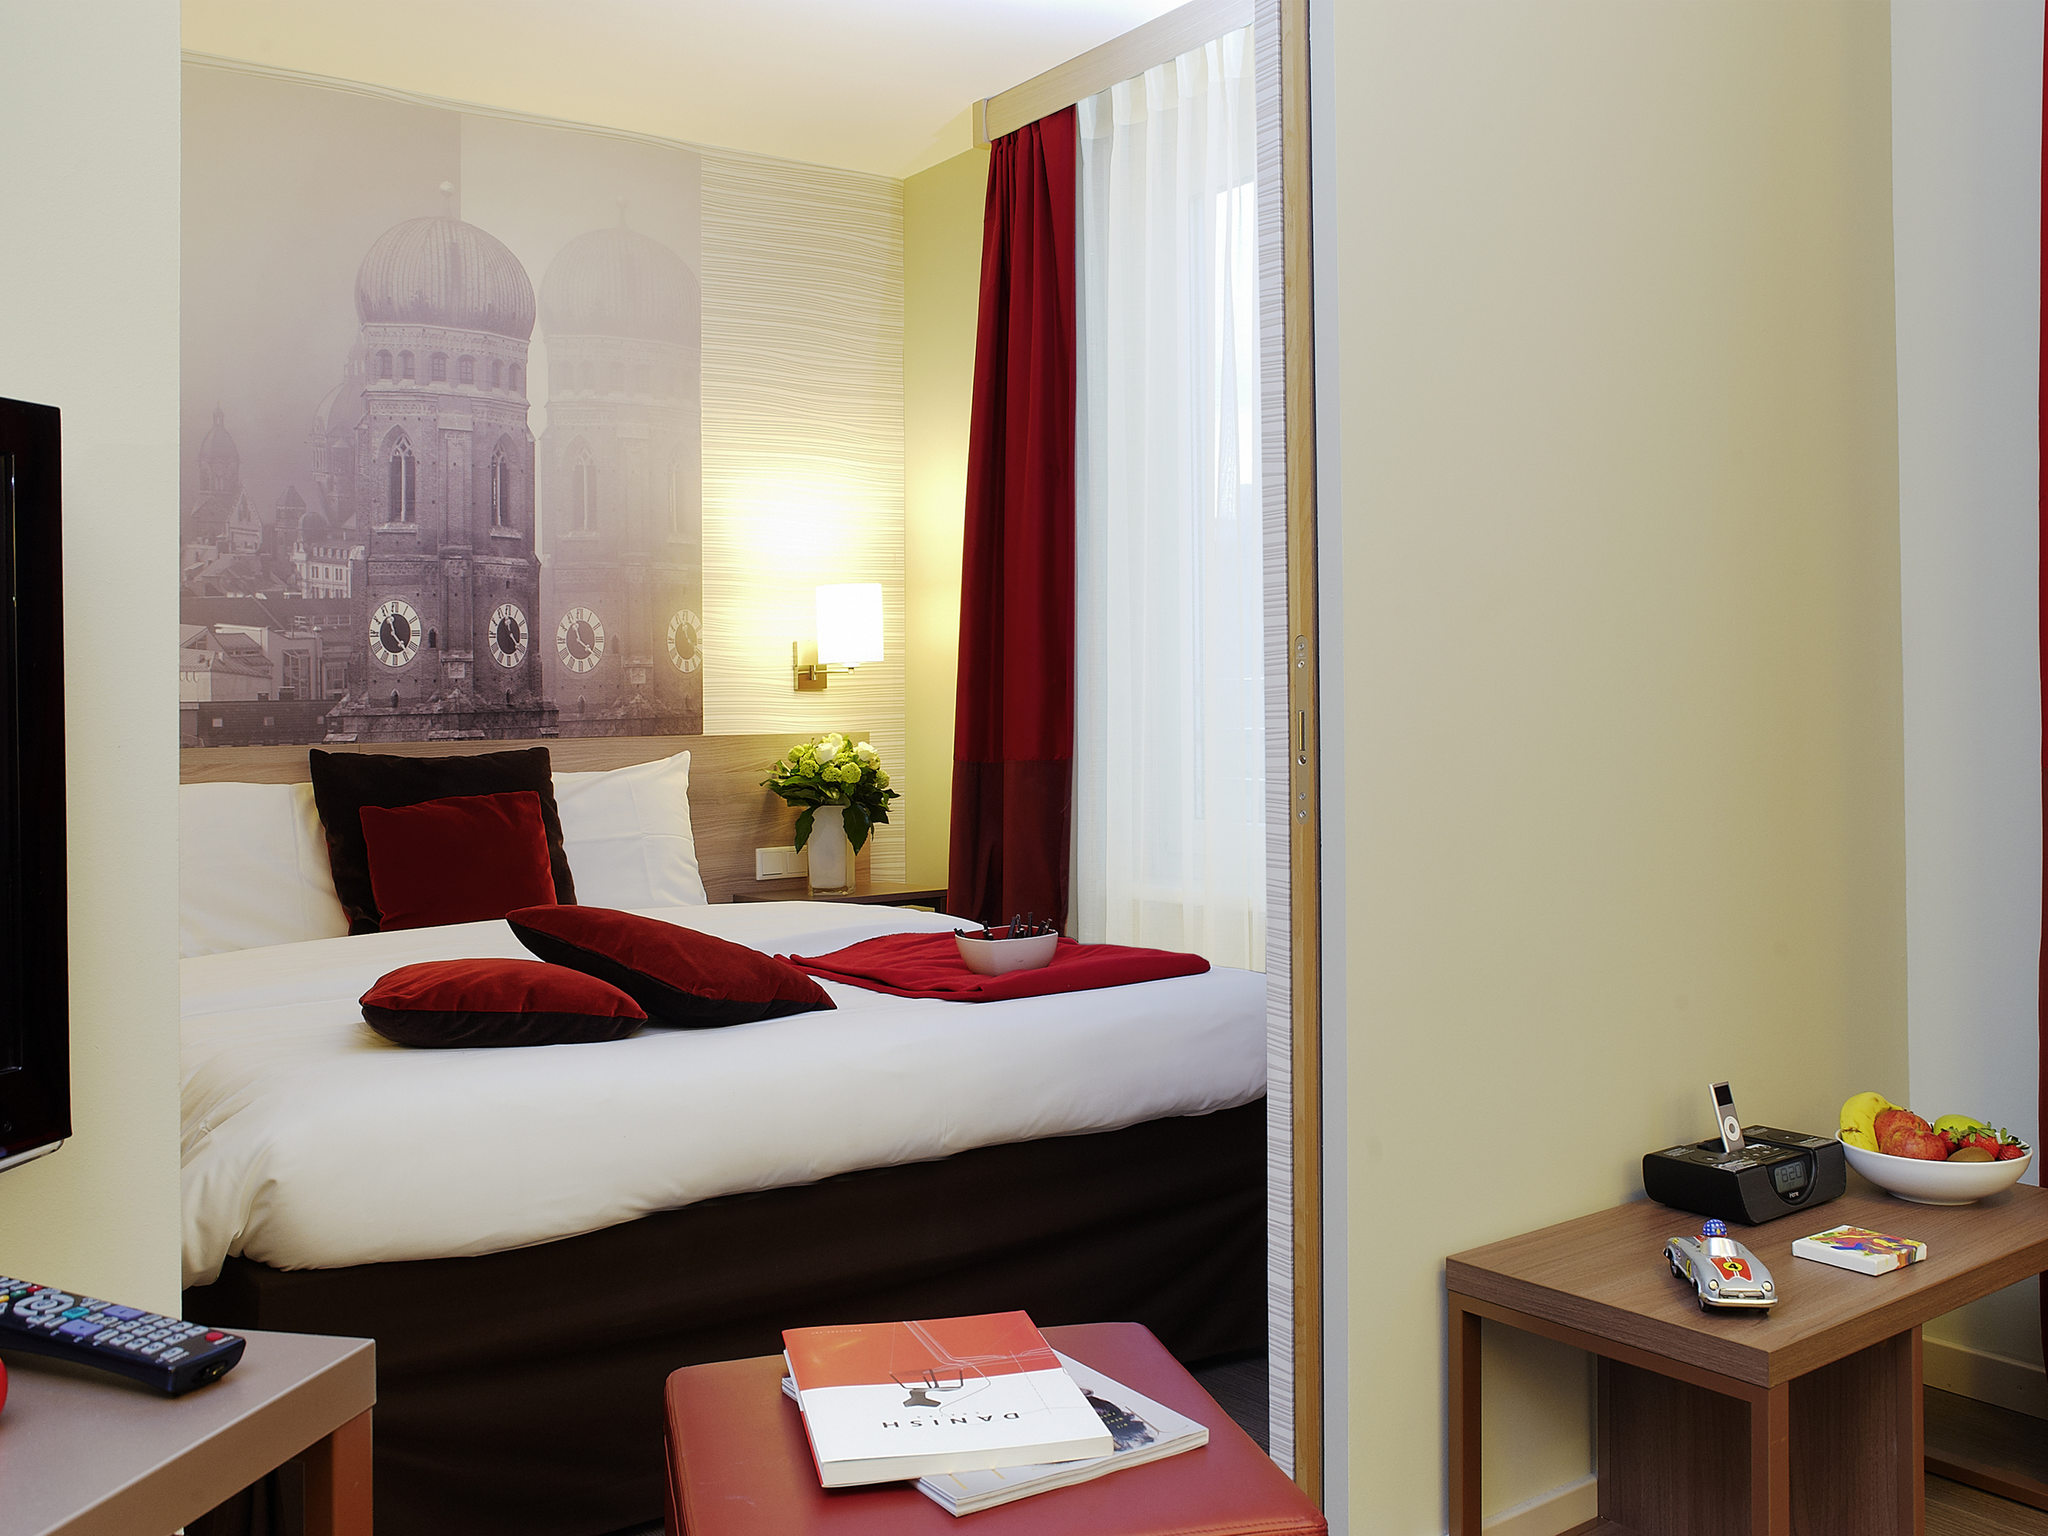 Hotel – Aparthotel Adagio Munique City